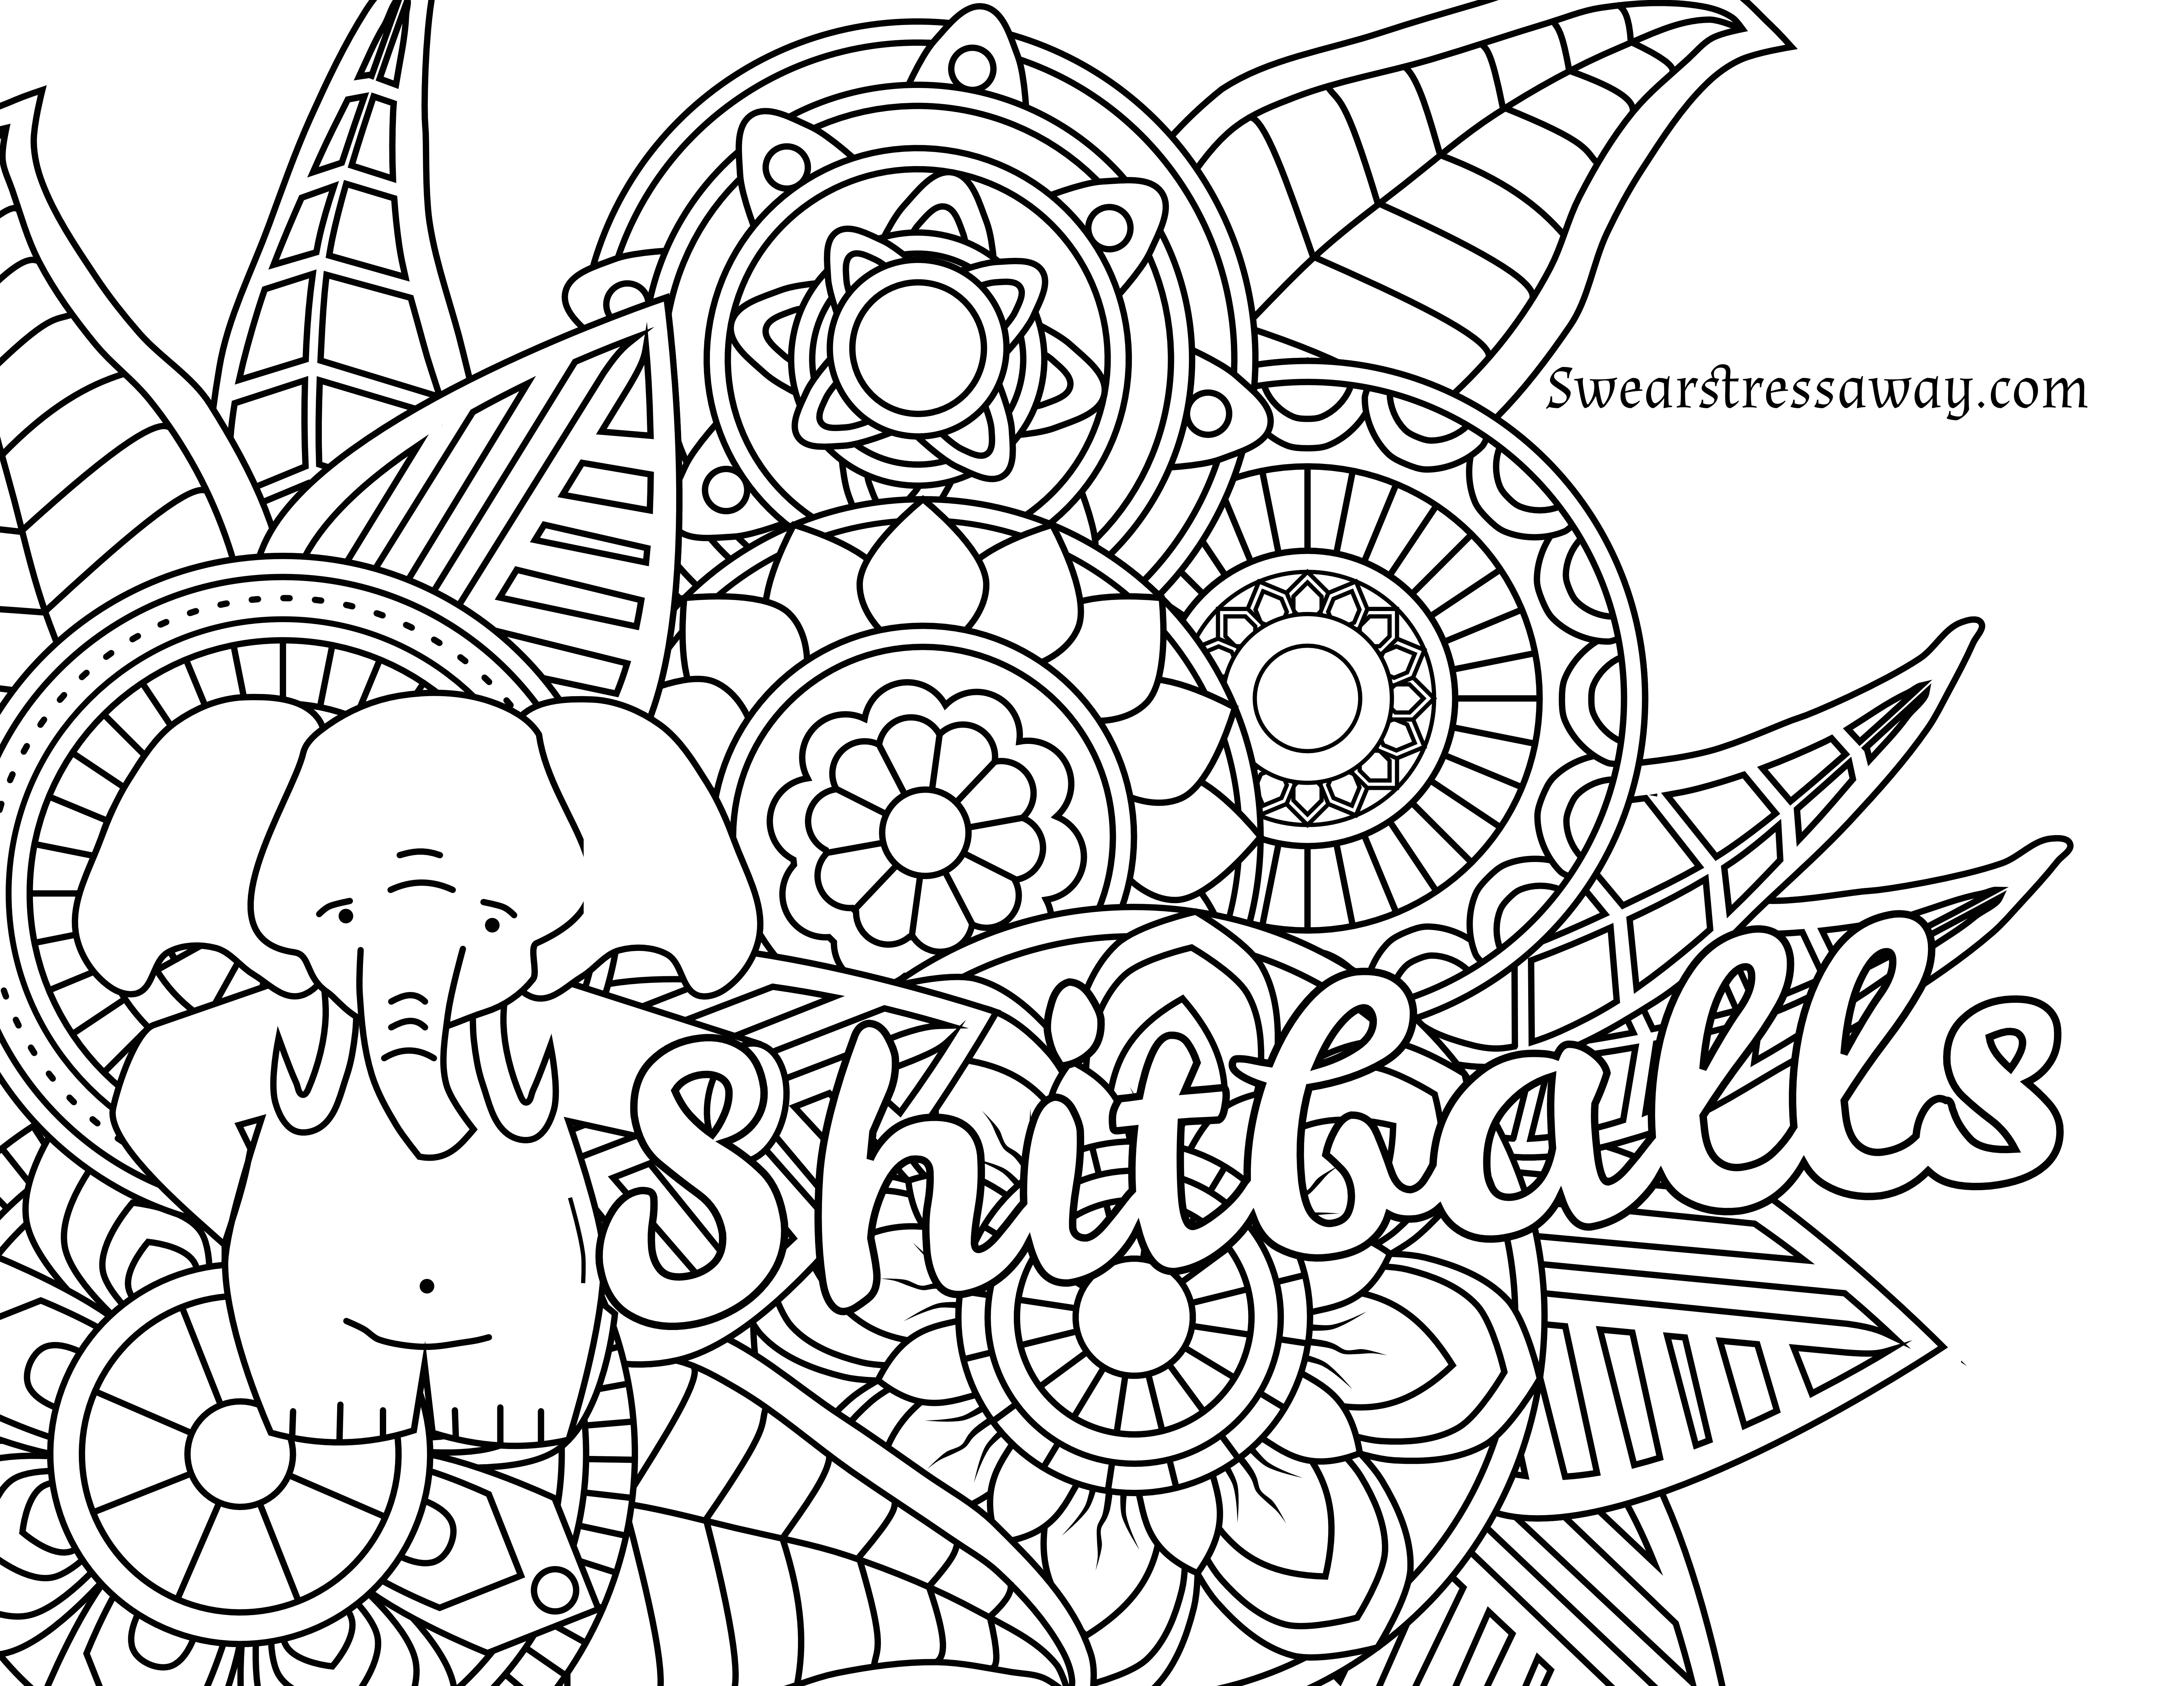 Free Printable Coloring Pages Adults Only Free Printable Coloring Pages Adults Only Topsailmultimedia